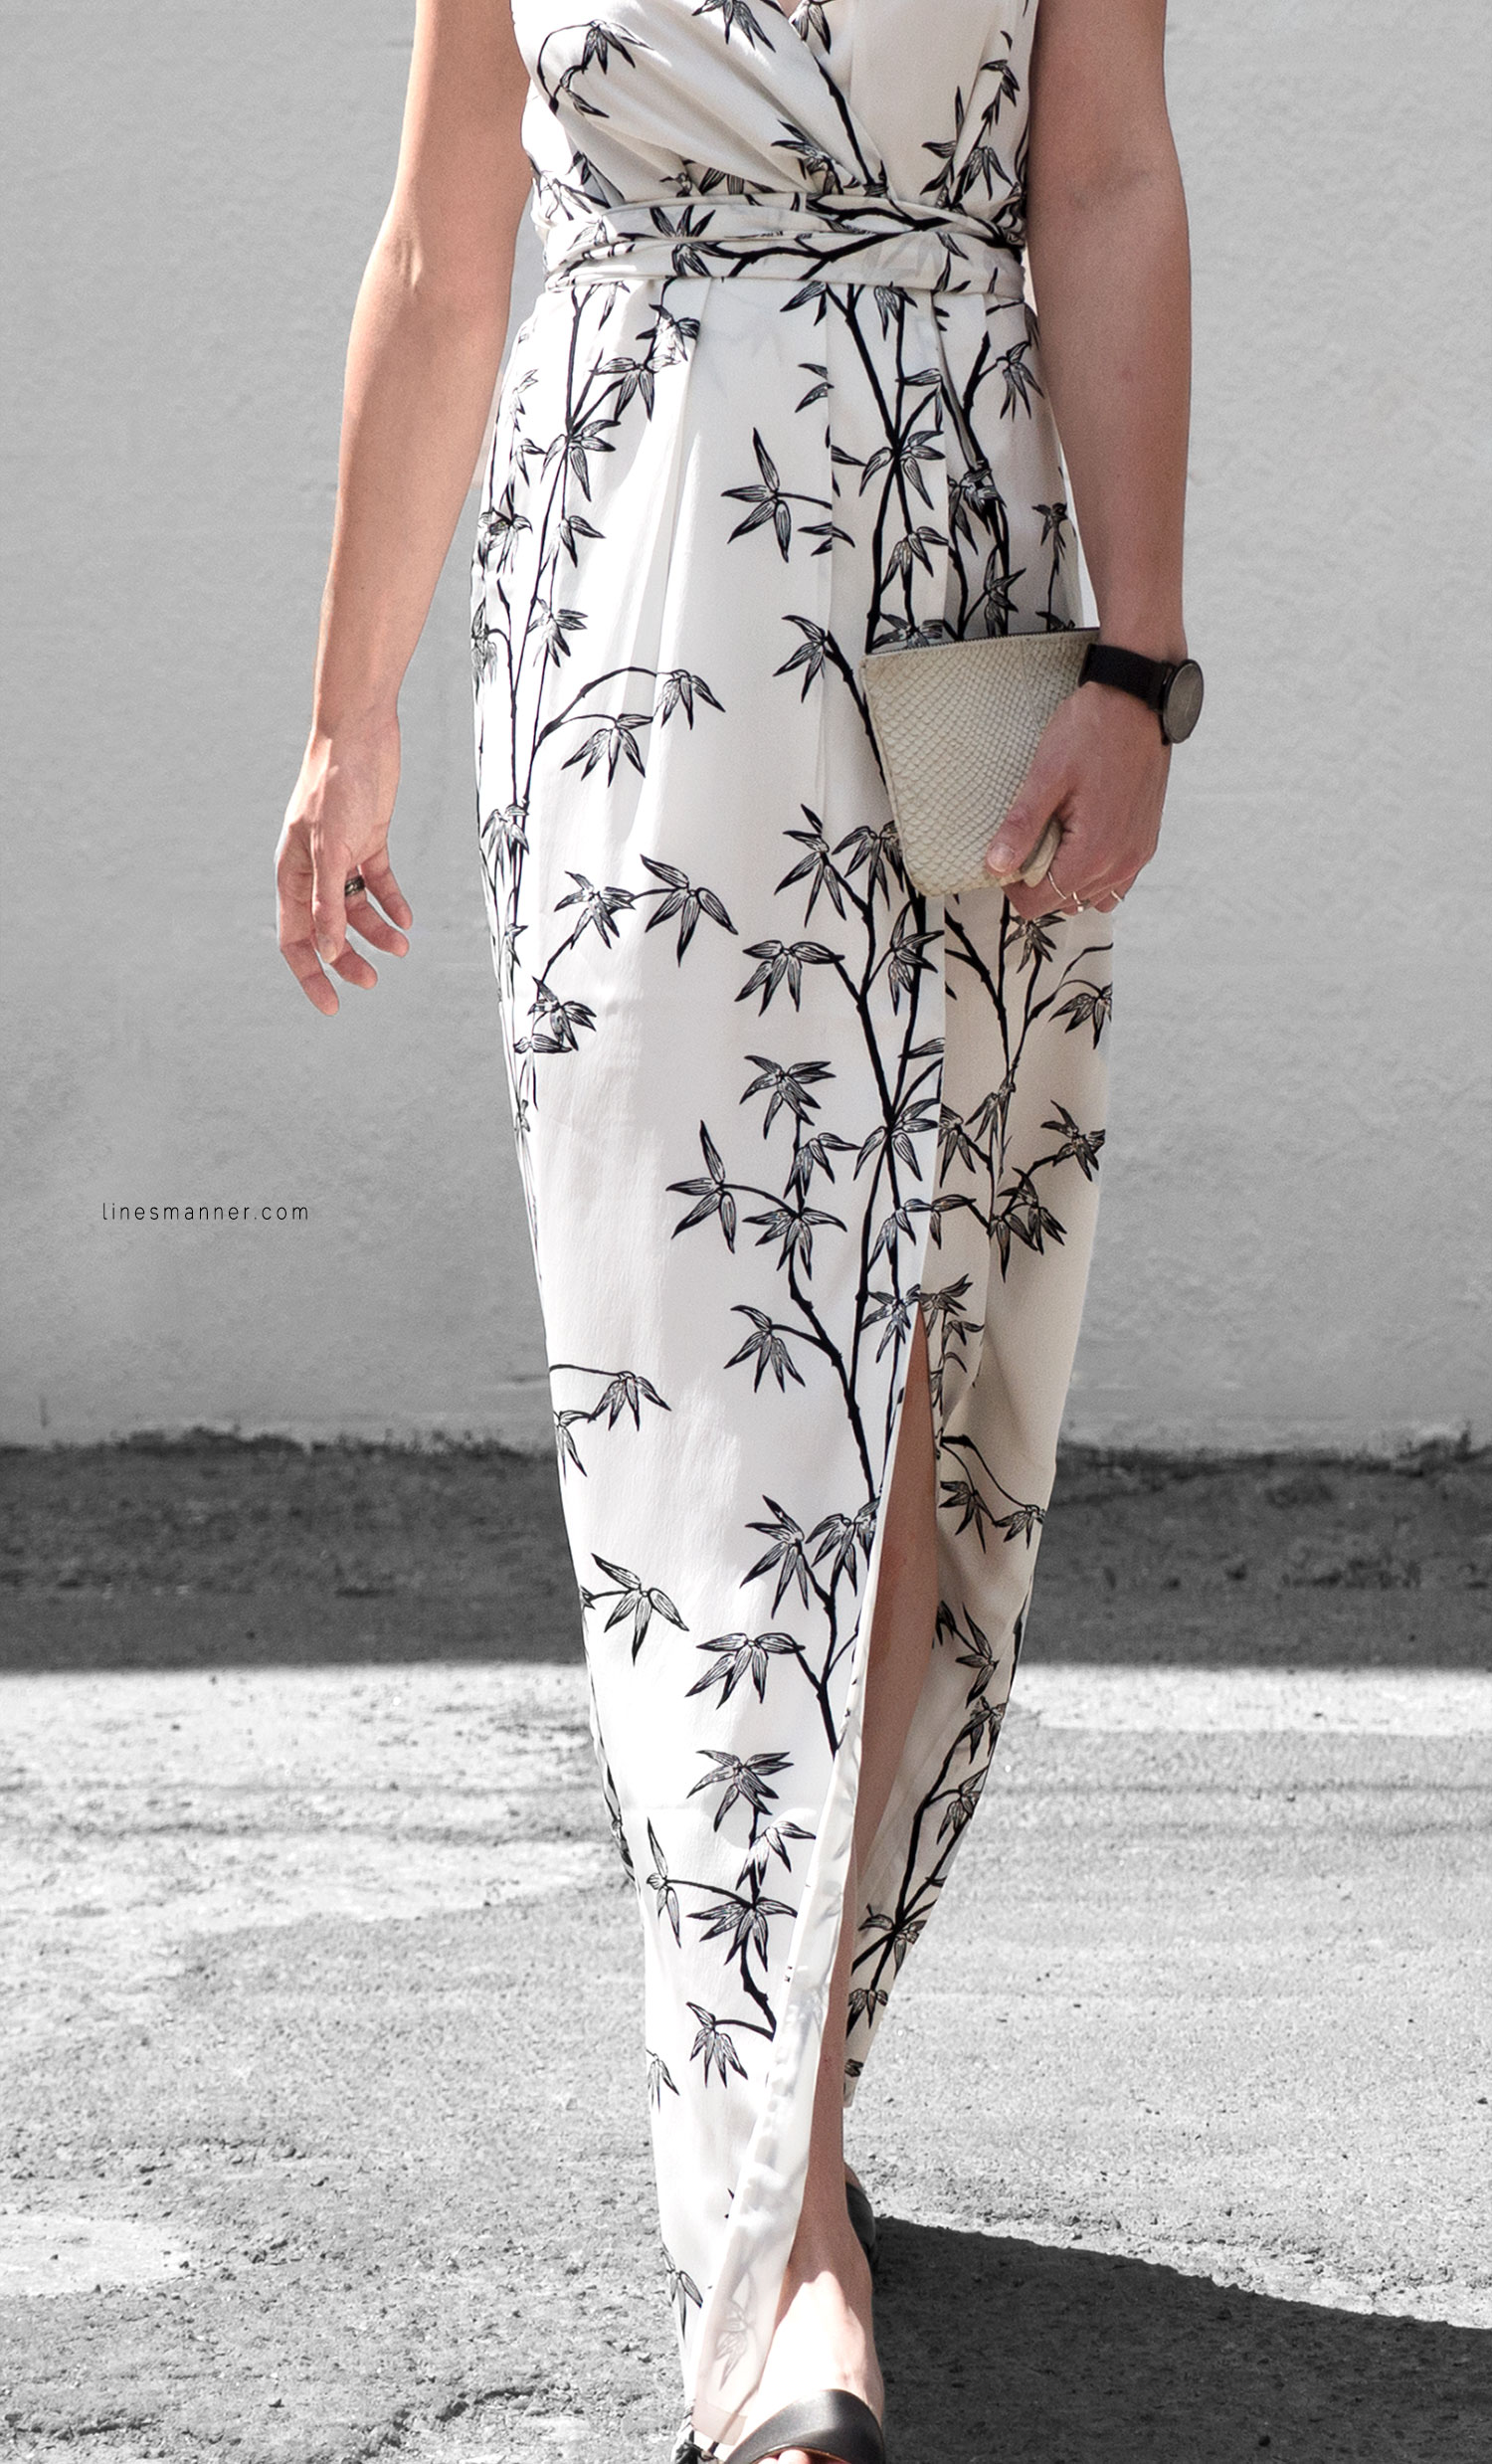 Lines-Manner-Minimal-Simplicity-Essentials-Bon_Label-Neon_Rose_Print-Bamboo-Slit_Dress-Wrap_Dress-Maxi_Dress-Fesh-Black_and_White-Casual-Elegant-Bright-Monochrome-20